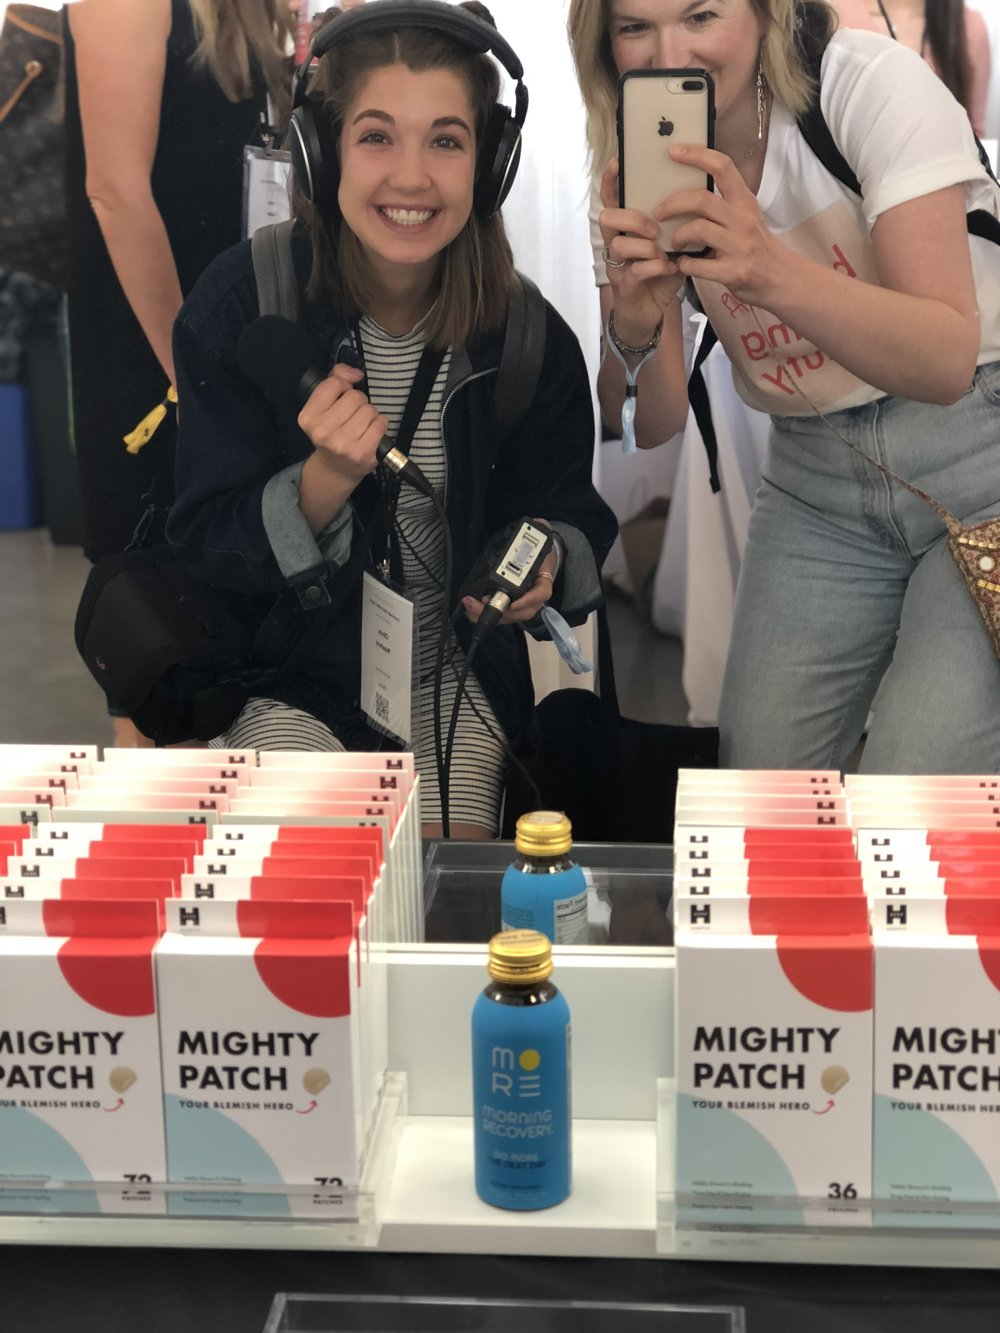 Co-Host Carlene Higgins (right) with sound tech Olivia Nashmi on location at the Hero Cosmetics booth during FounderMade's Consumer Discovery Show in New York